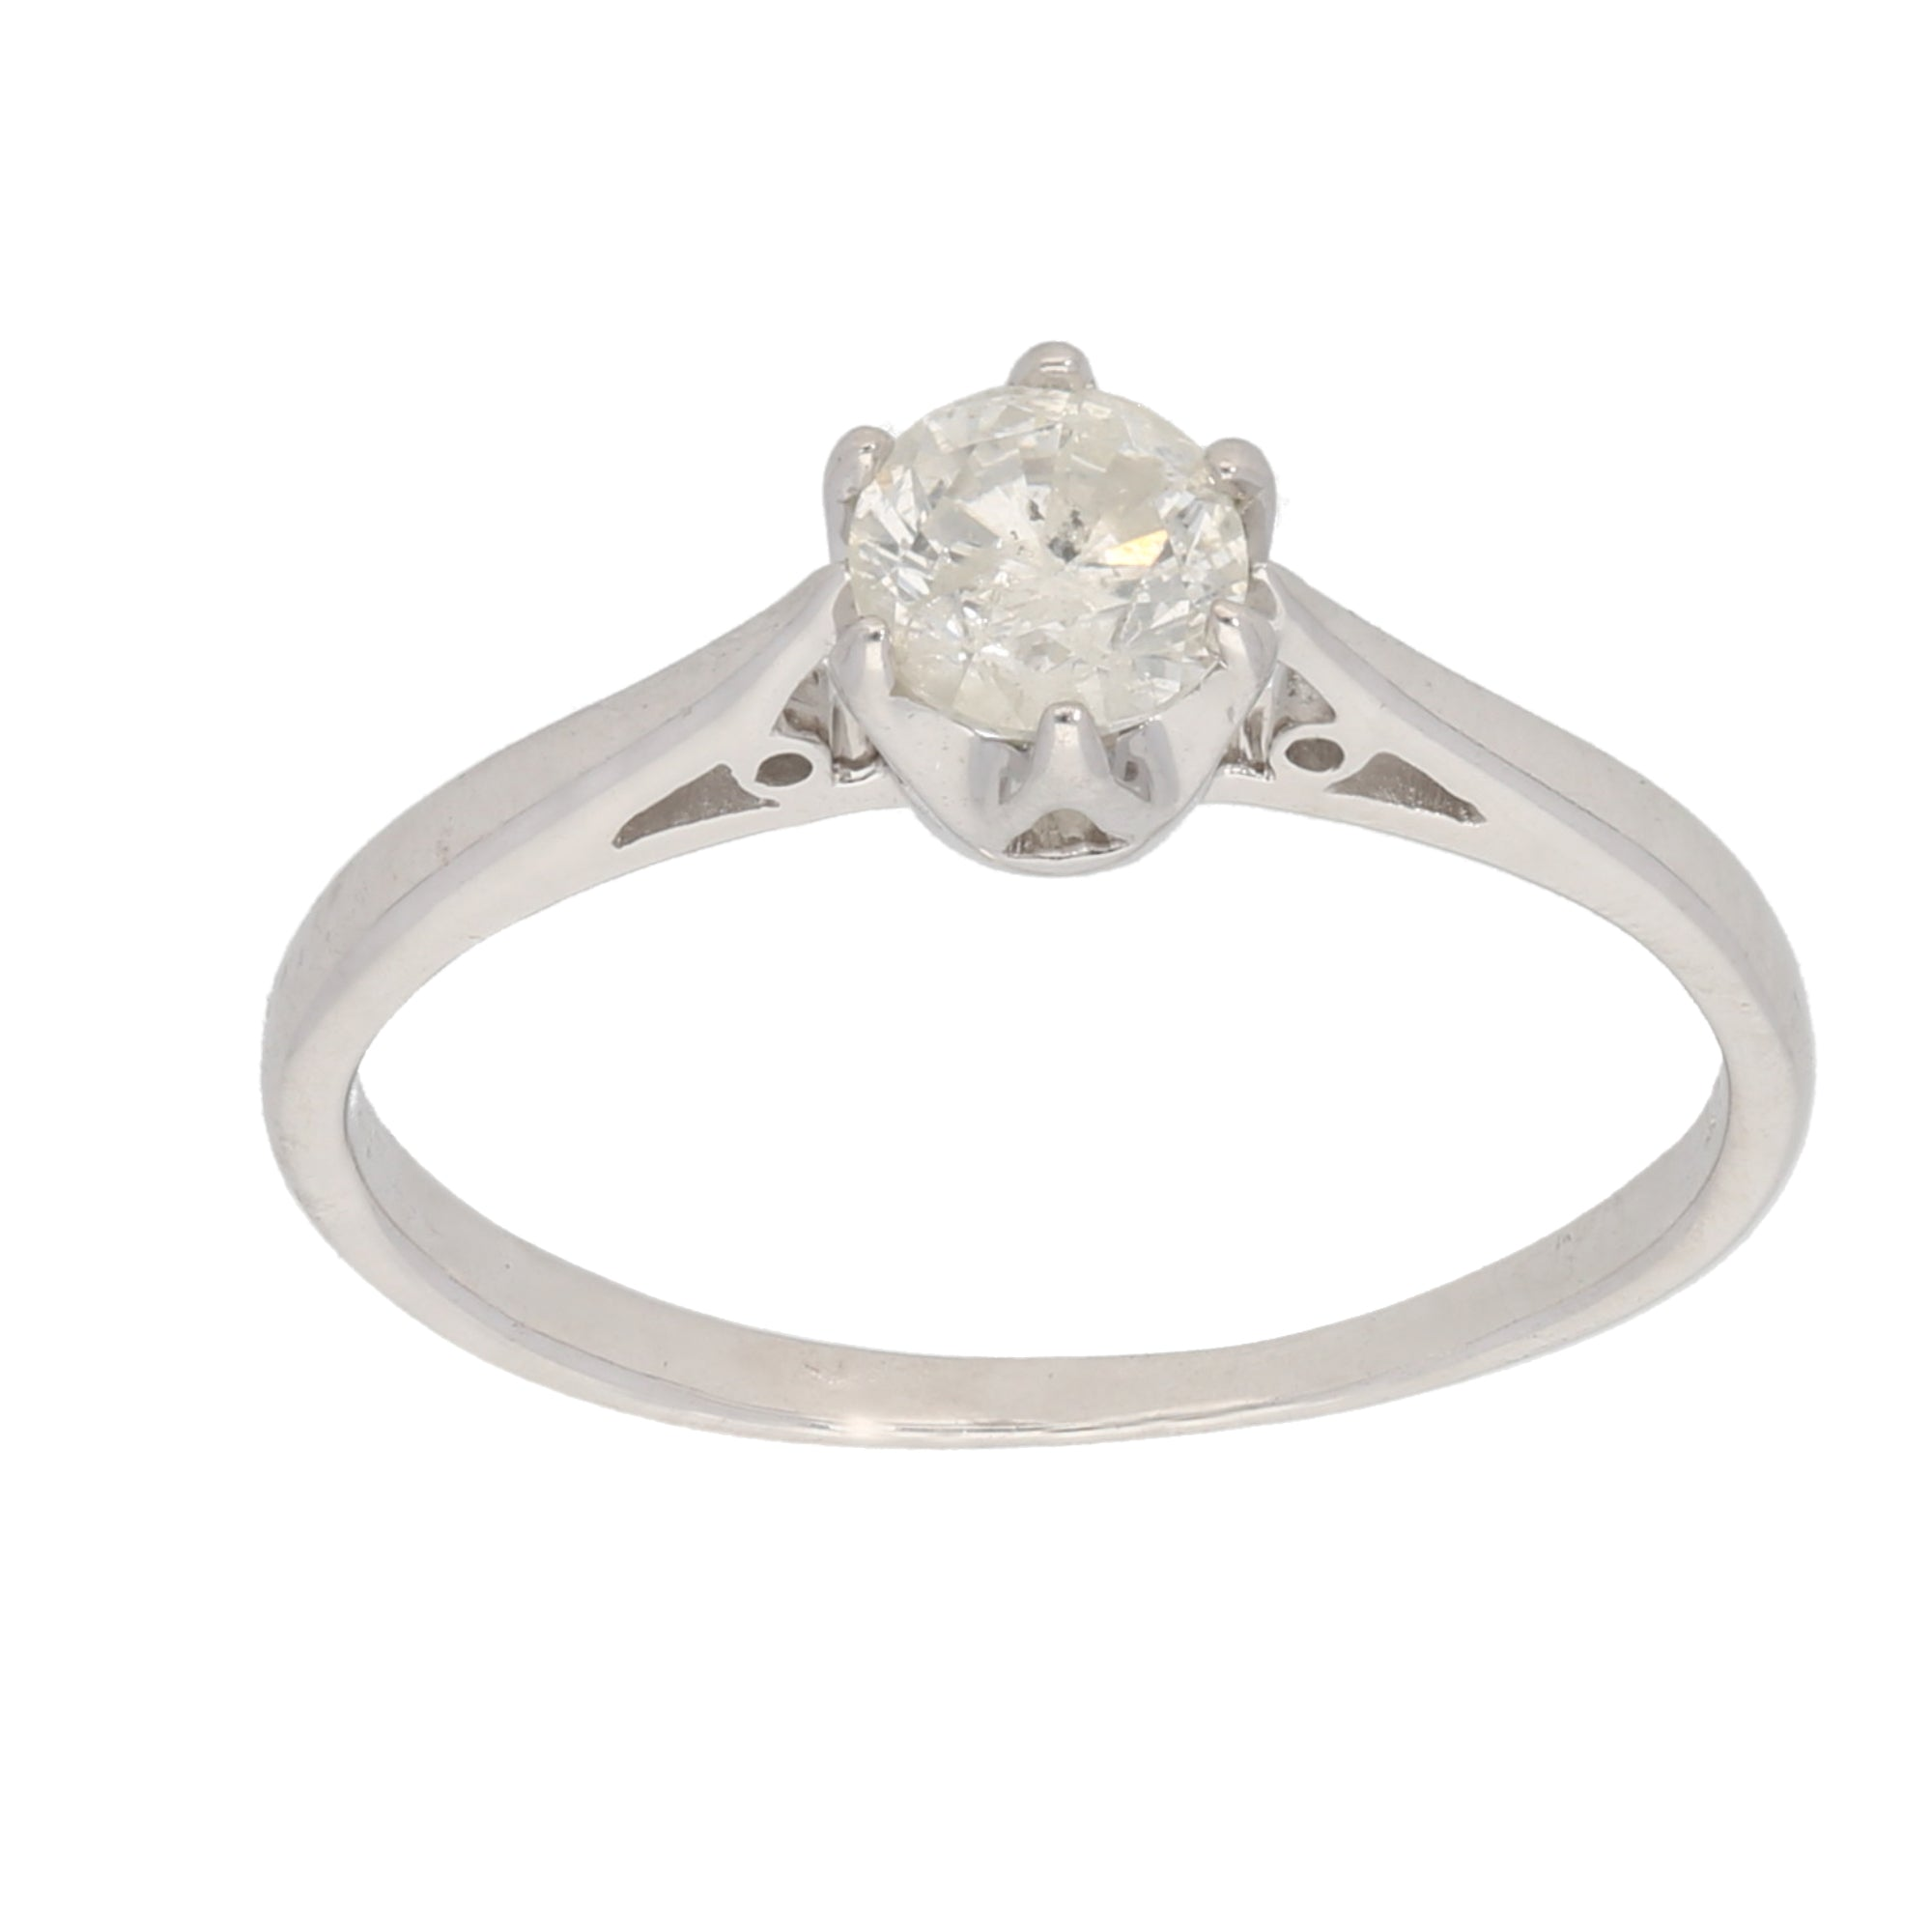 18ct White Gold 0.50ct Round Cut Diamond Ladies Solitaire Ring Size N